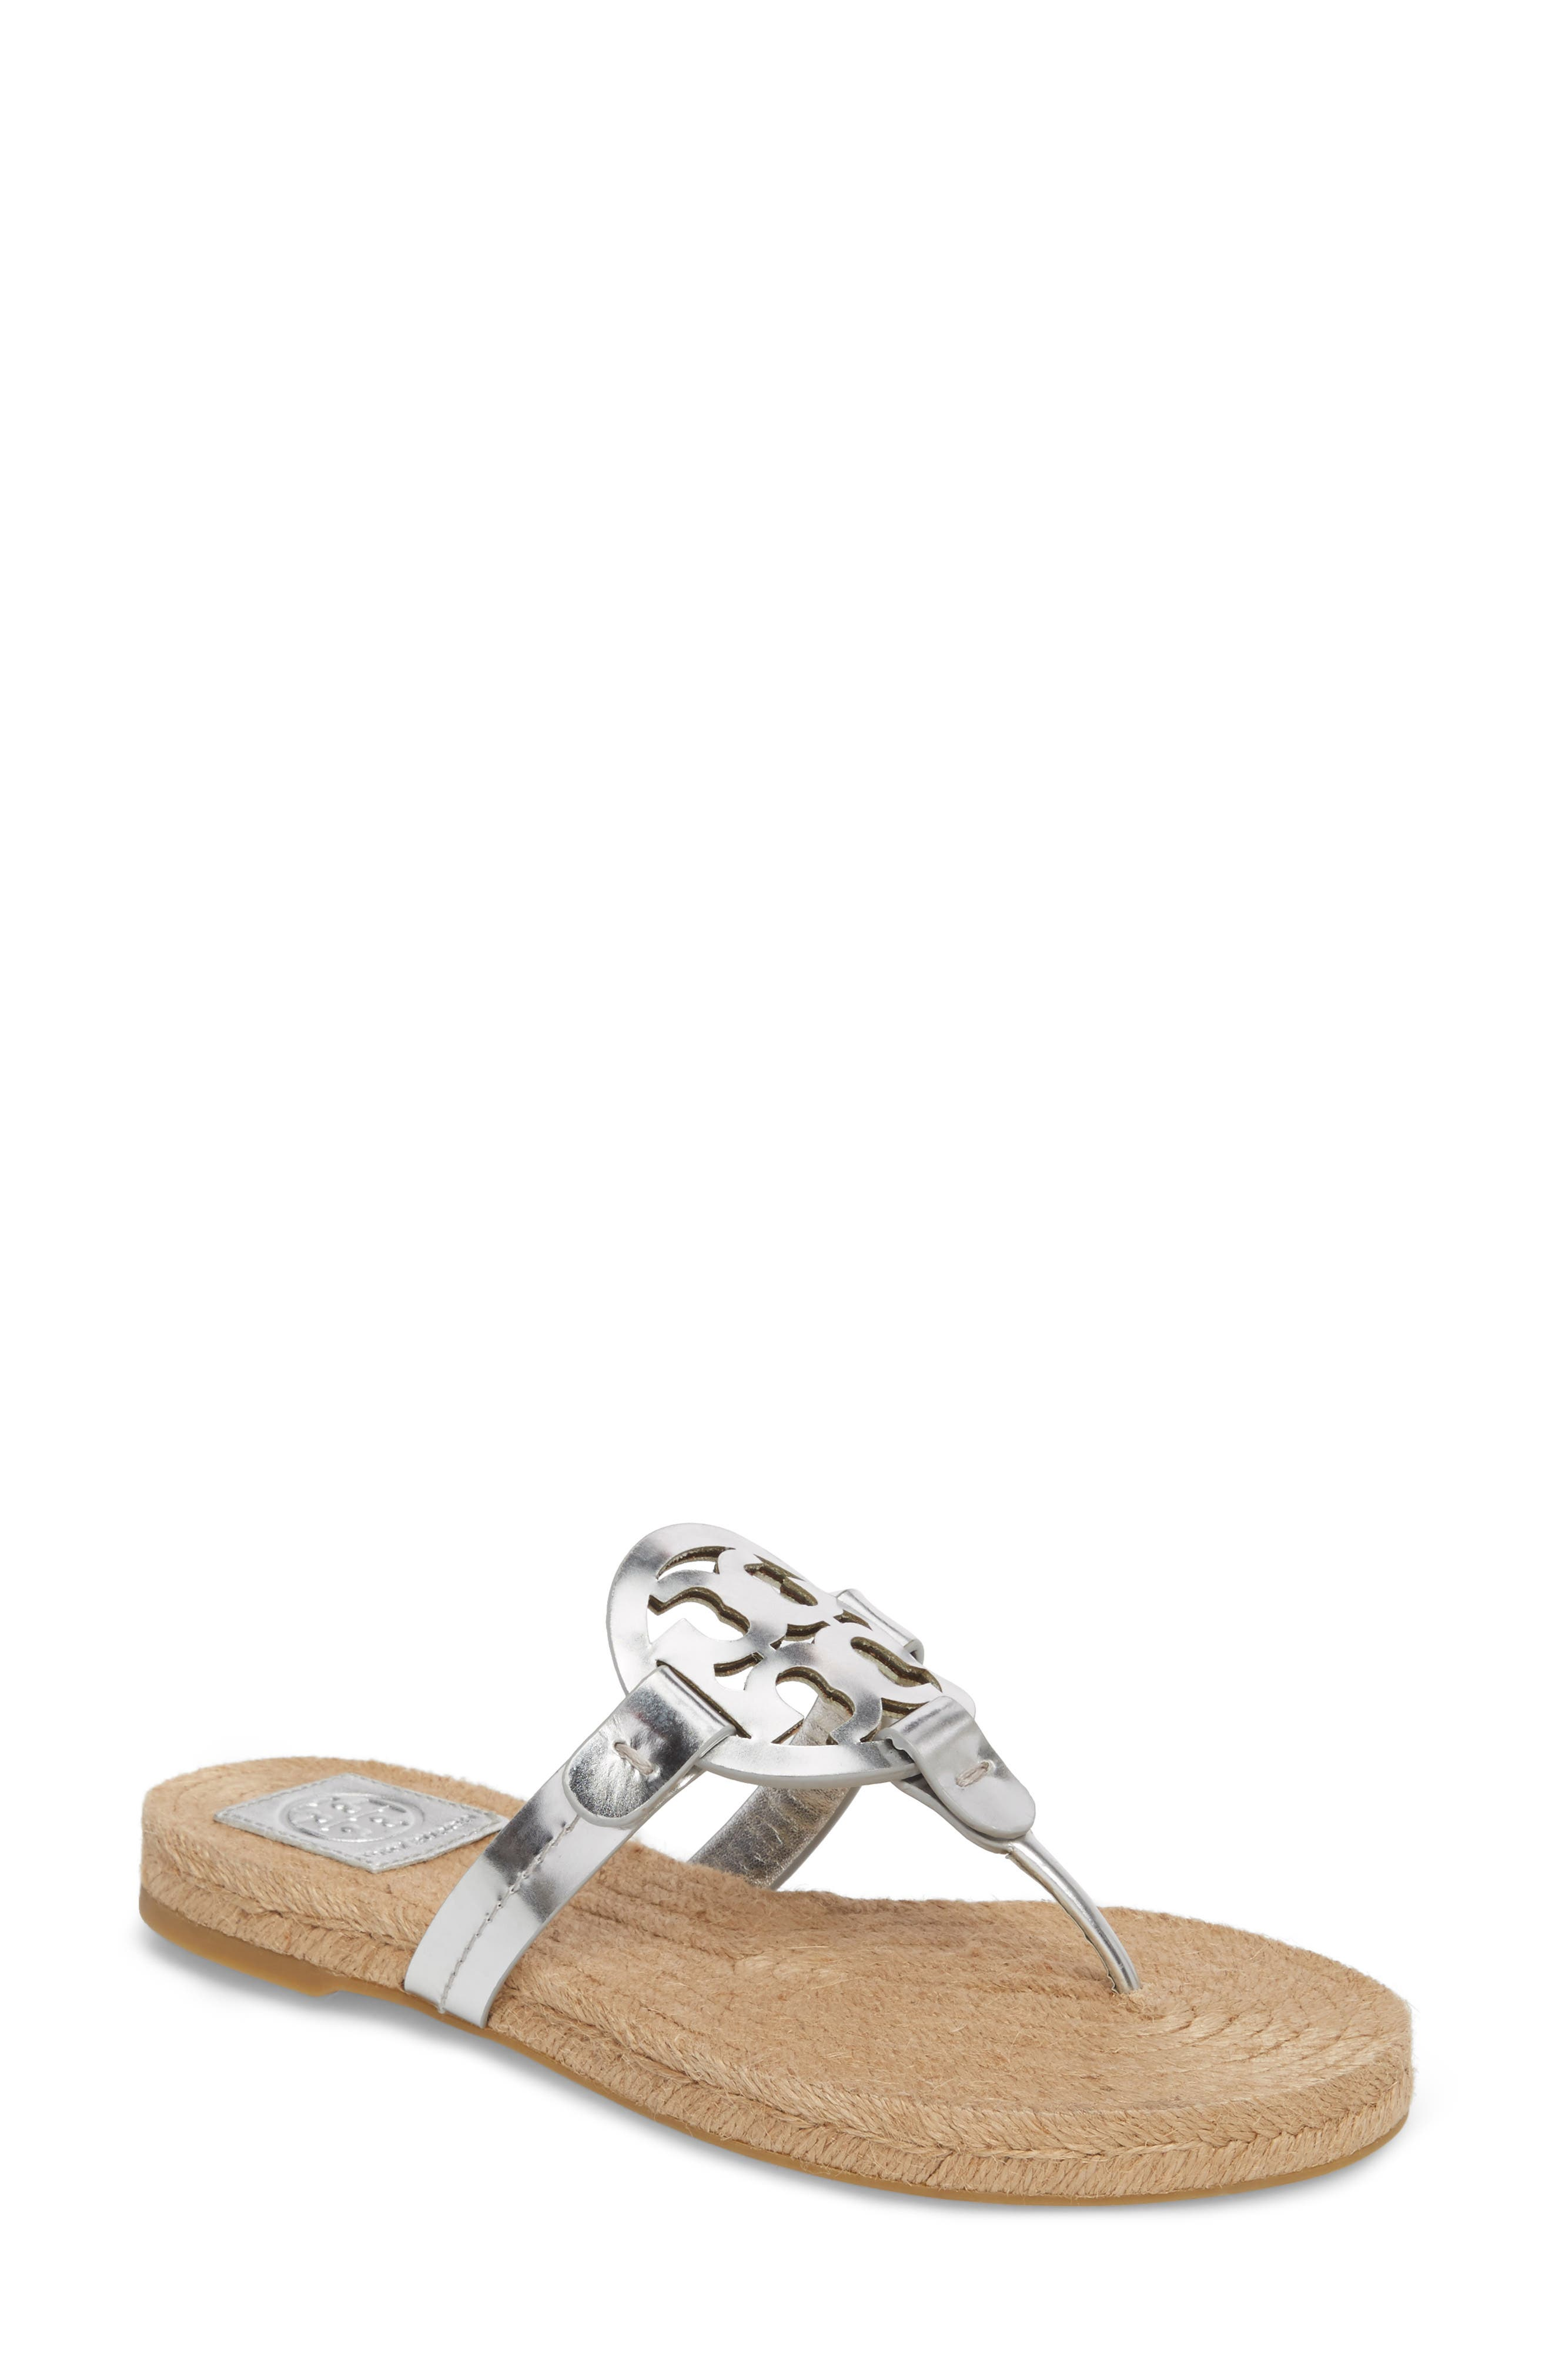 Miller Espadrille Sandal,                         Main,                         color, 023